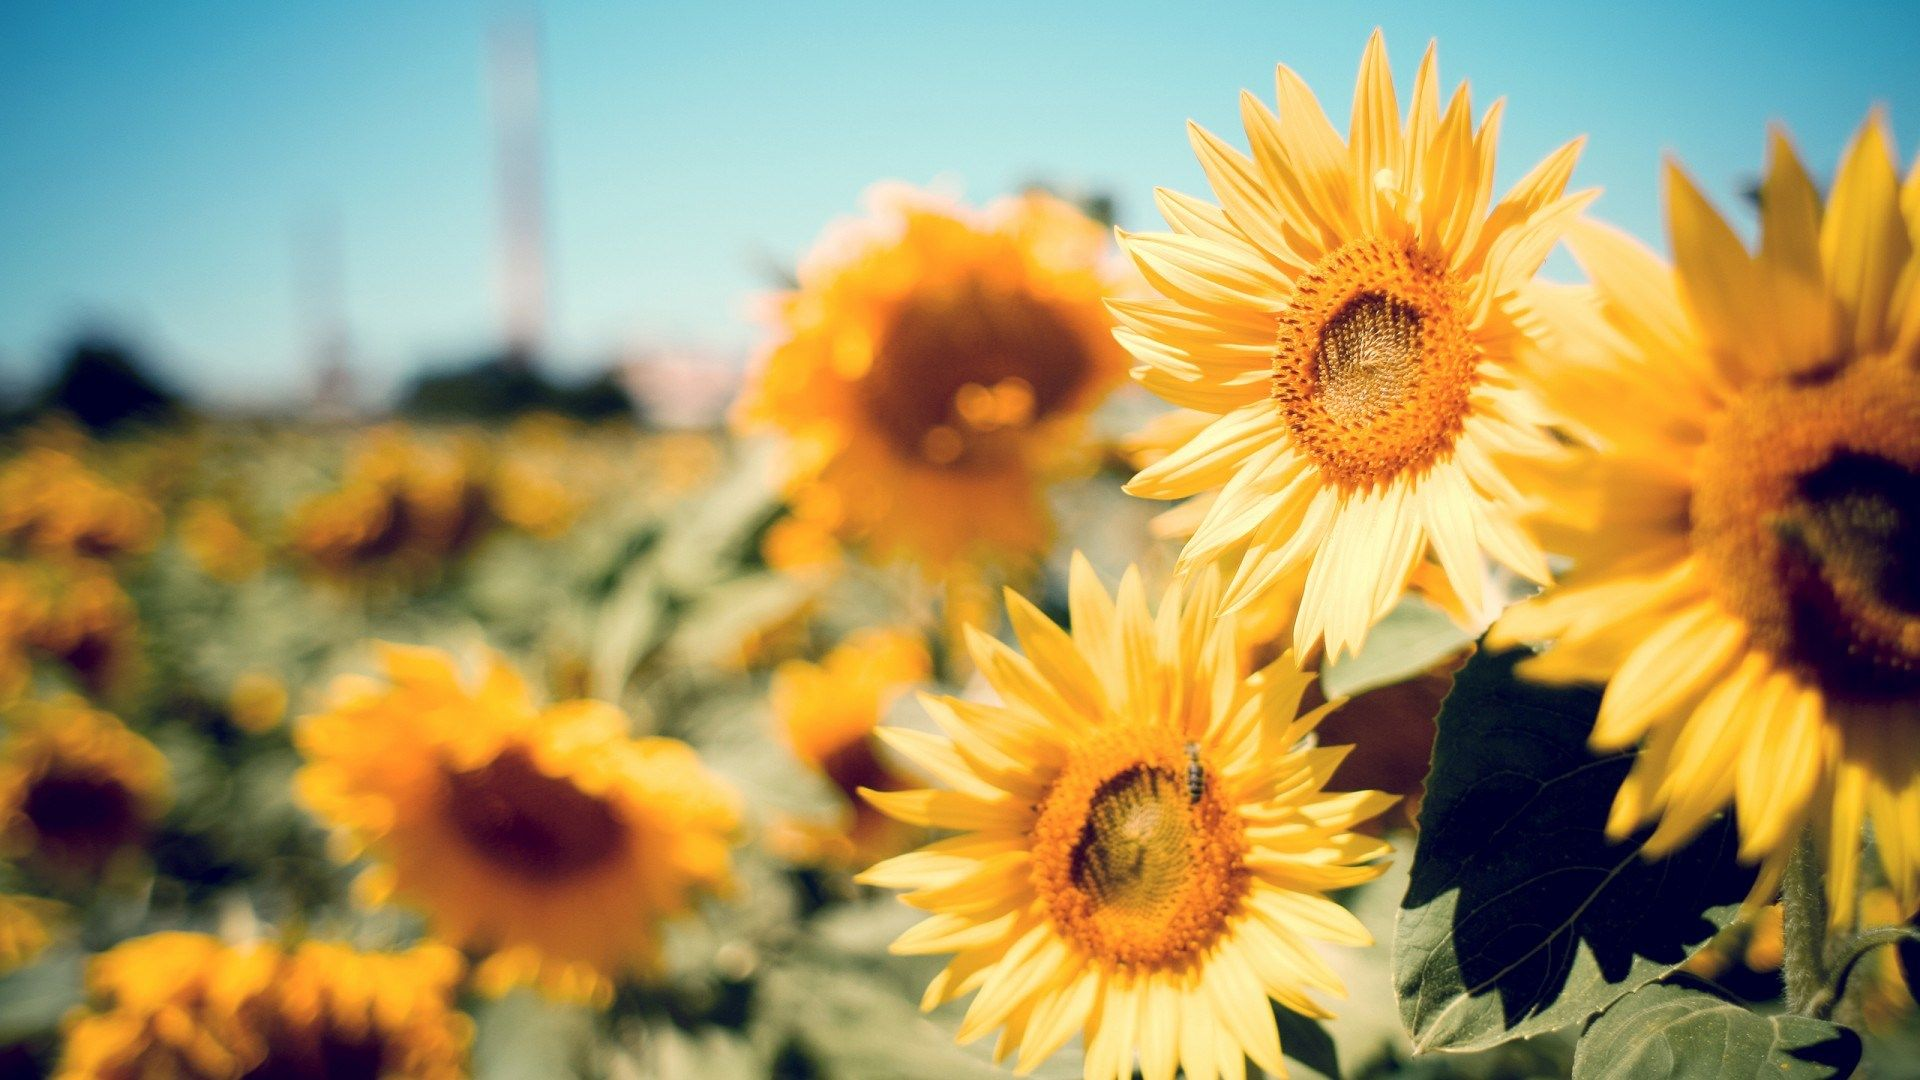 sunflower photography wallpaper free